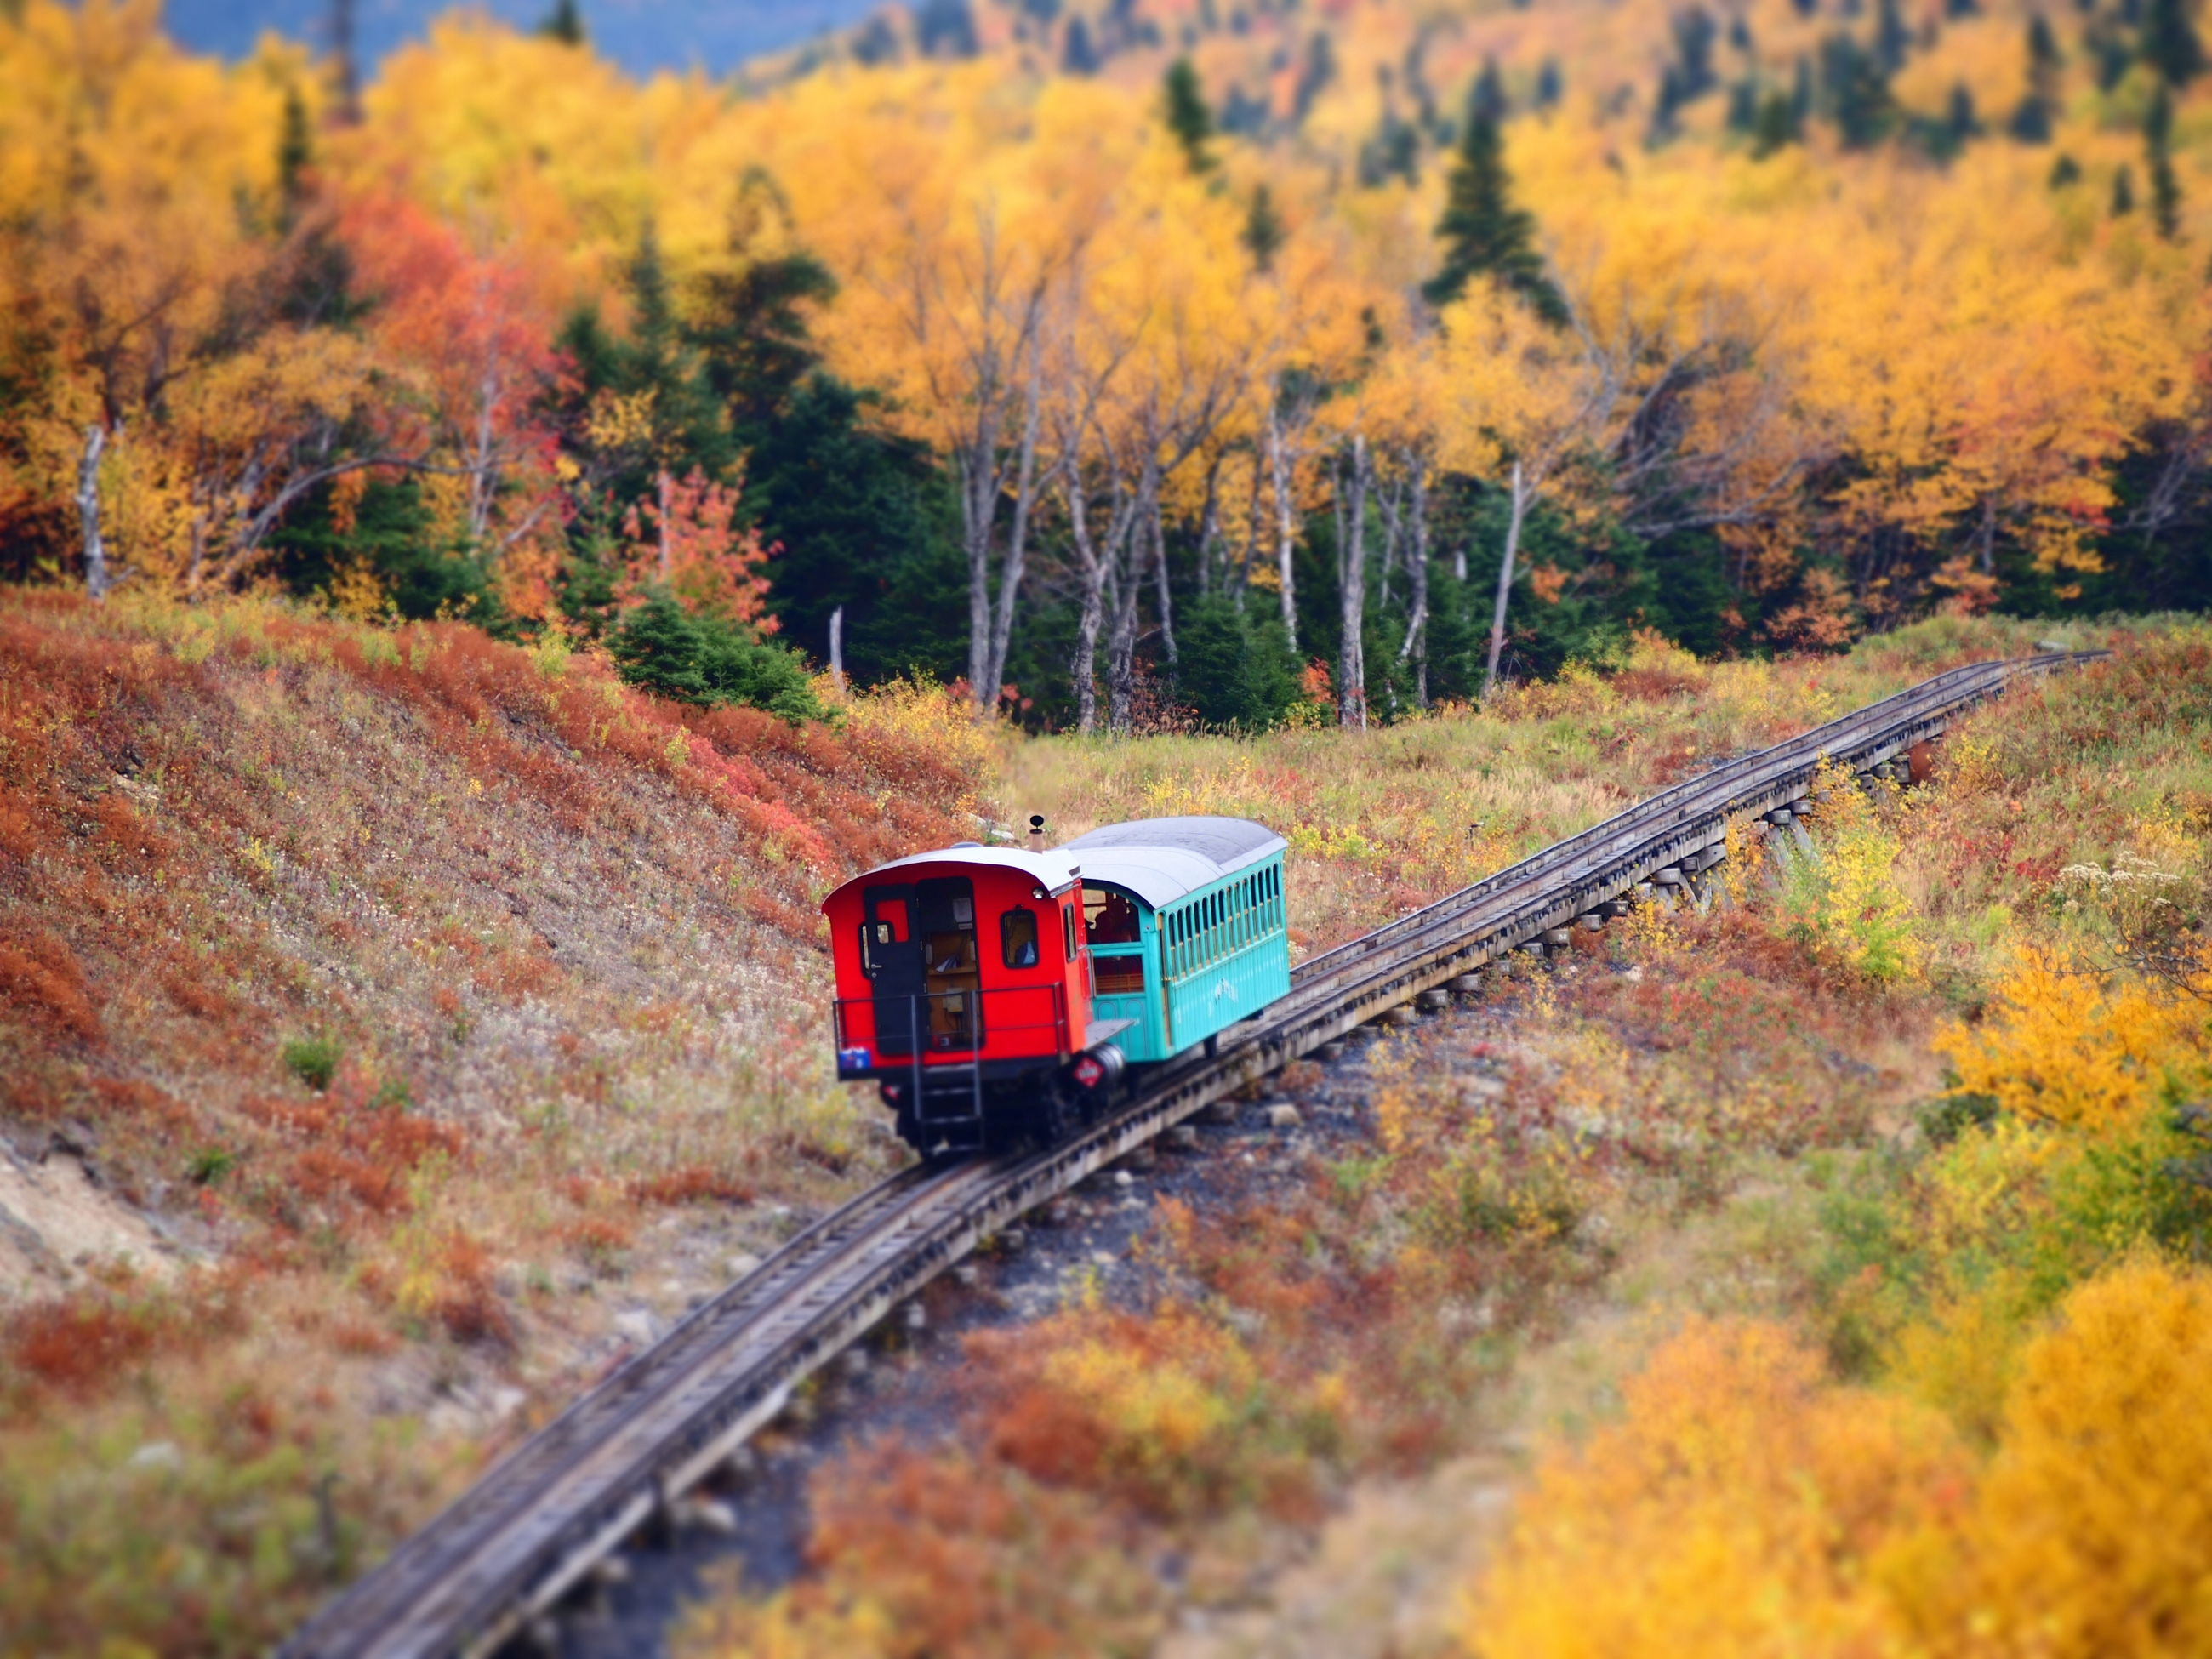 railroad track, rail transportation, tree, transportation, public transportation, forest, autumn, tranquility, nature, train - vehicle, selective focus, tranquil scene, travel, orange color, outdoors, railway track, no people, red, mode of transport, day